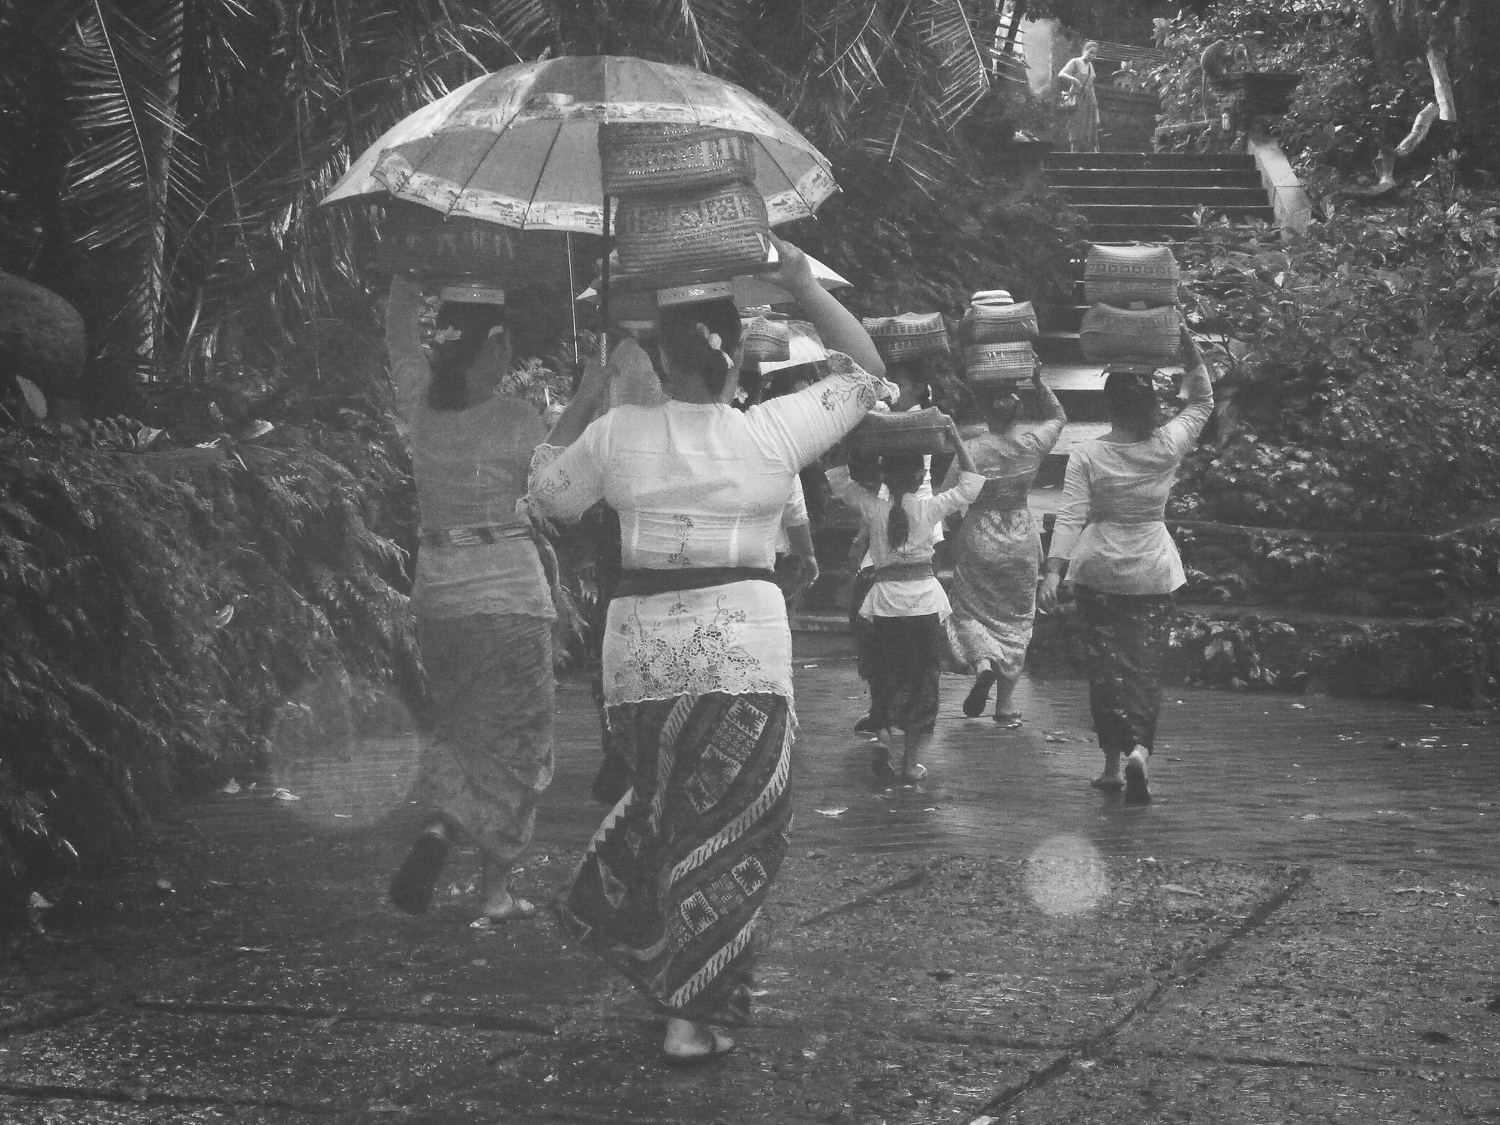 Balinese women carrying washing on their heads at the Monkey forest in Bali